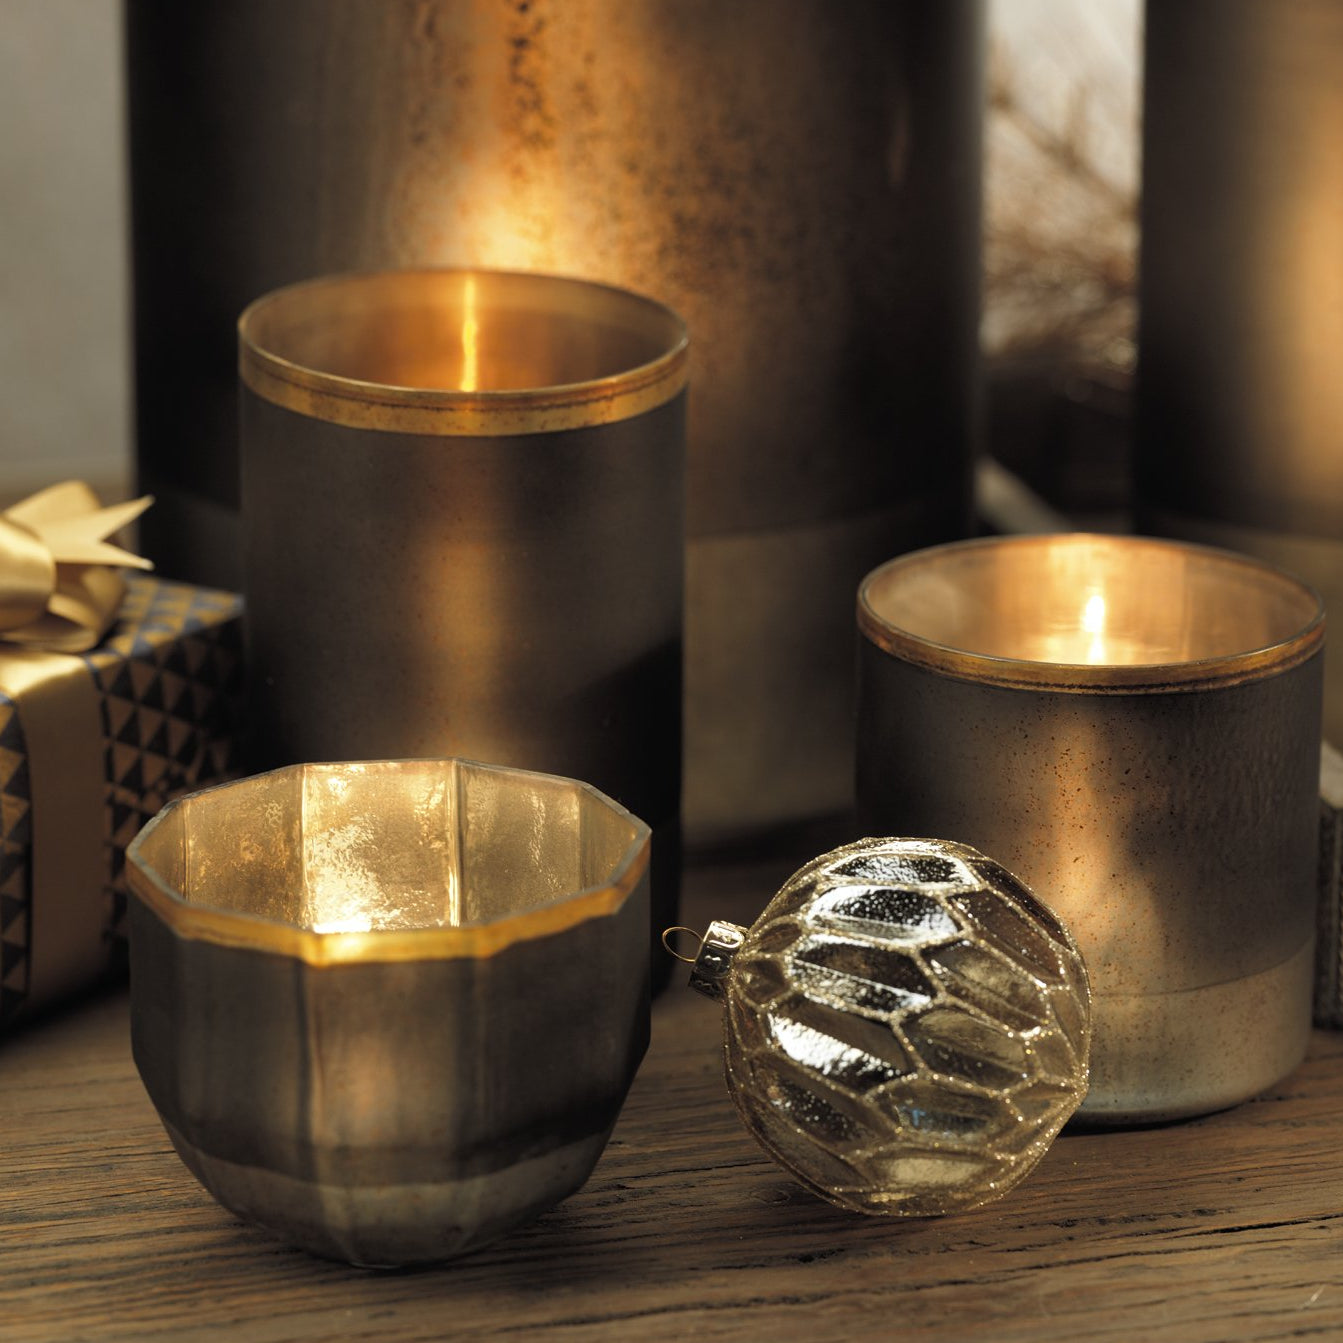 Emilie Faceted Mercury Candle Holders - Black Onyx - CARLYLE AVENUE